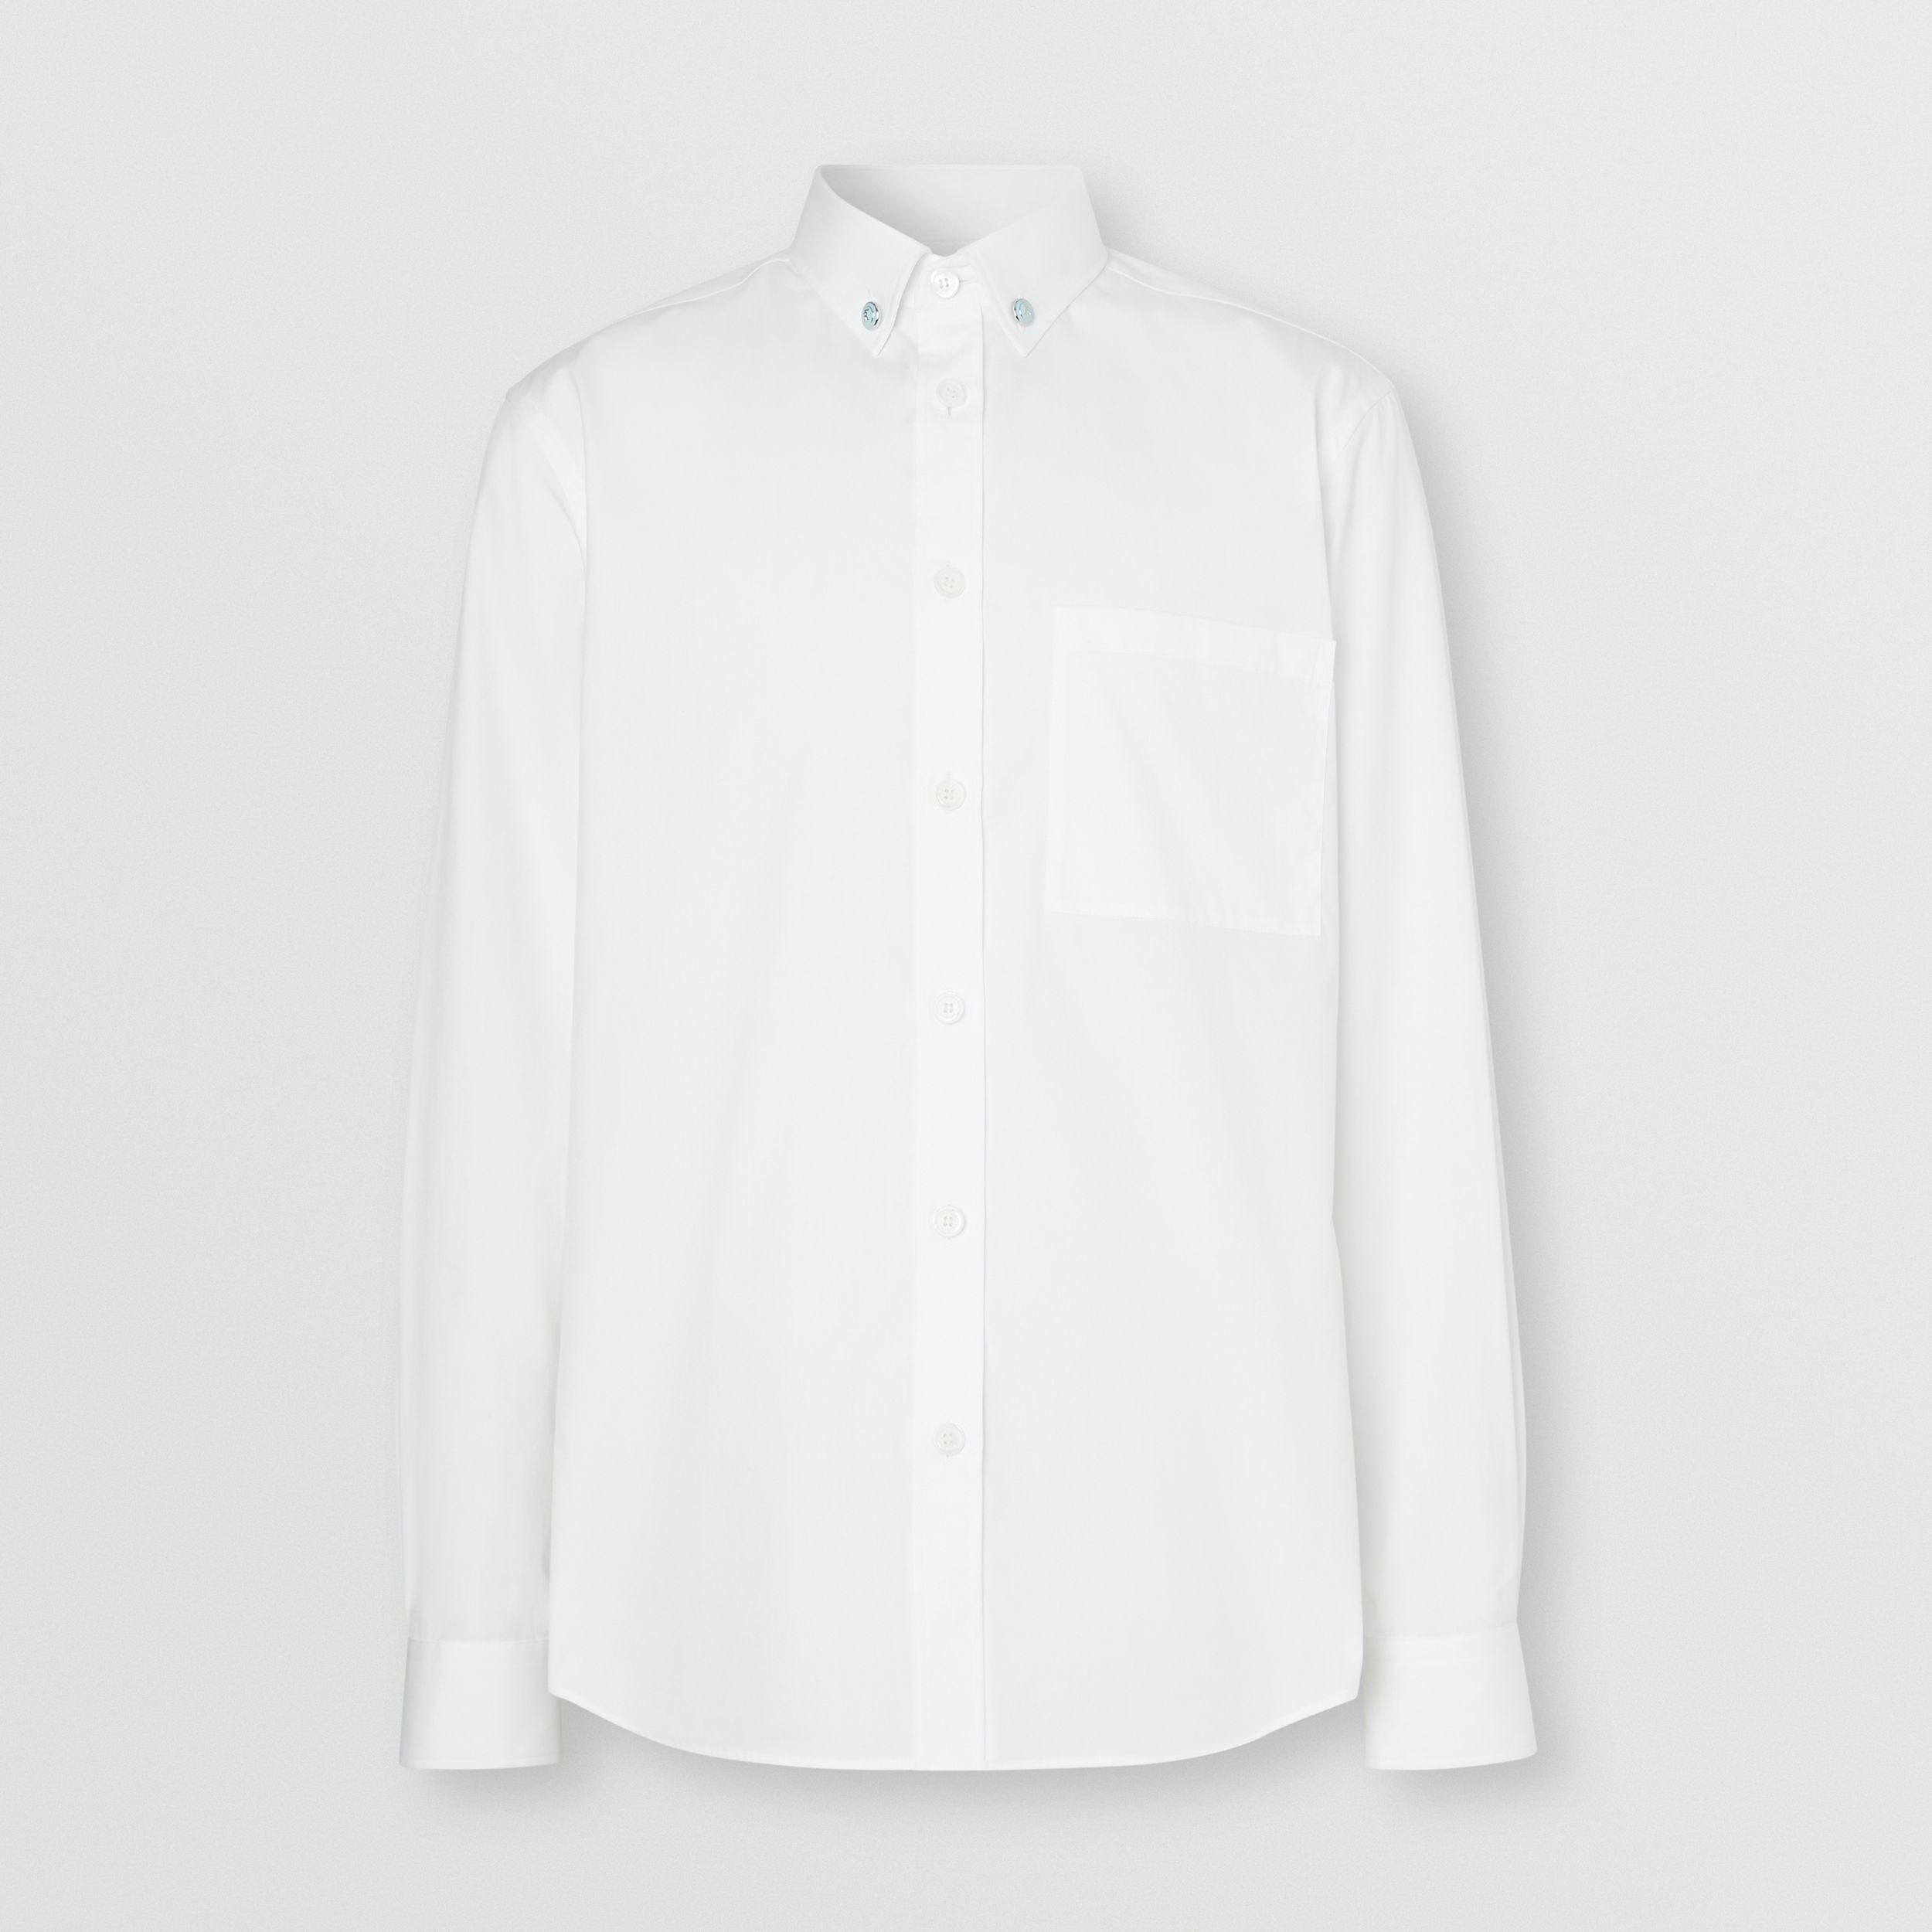 Slim Fit Stretch Cotton Poplin Shirt in White - Men | Burberry - 4